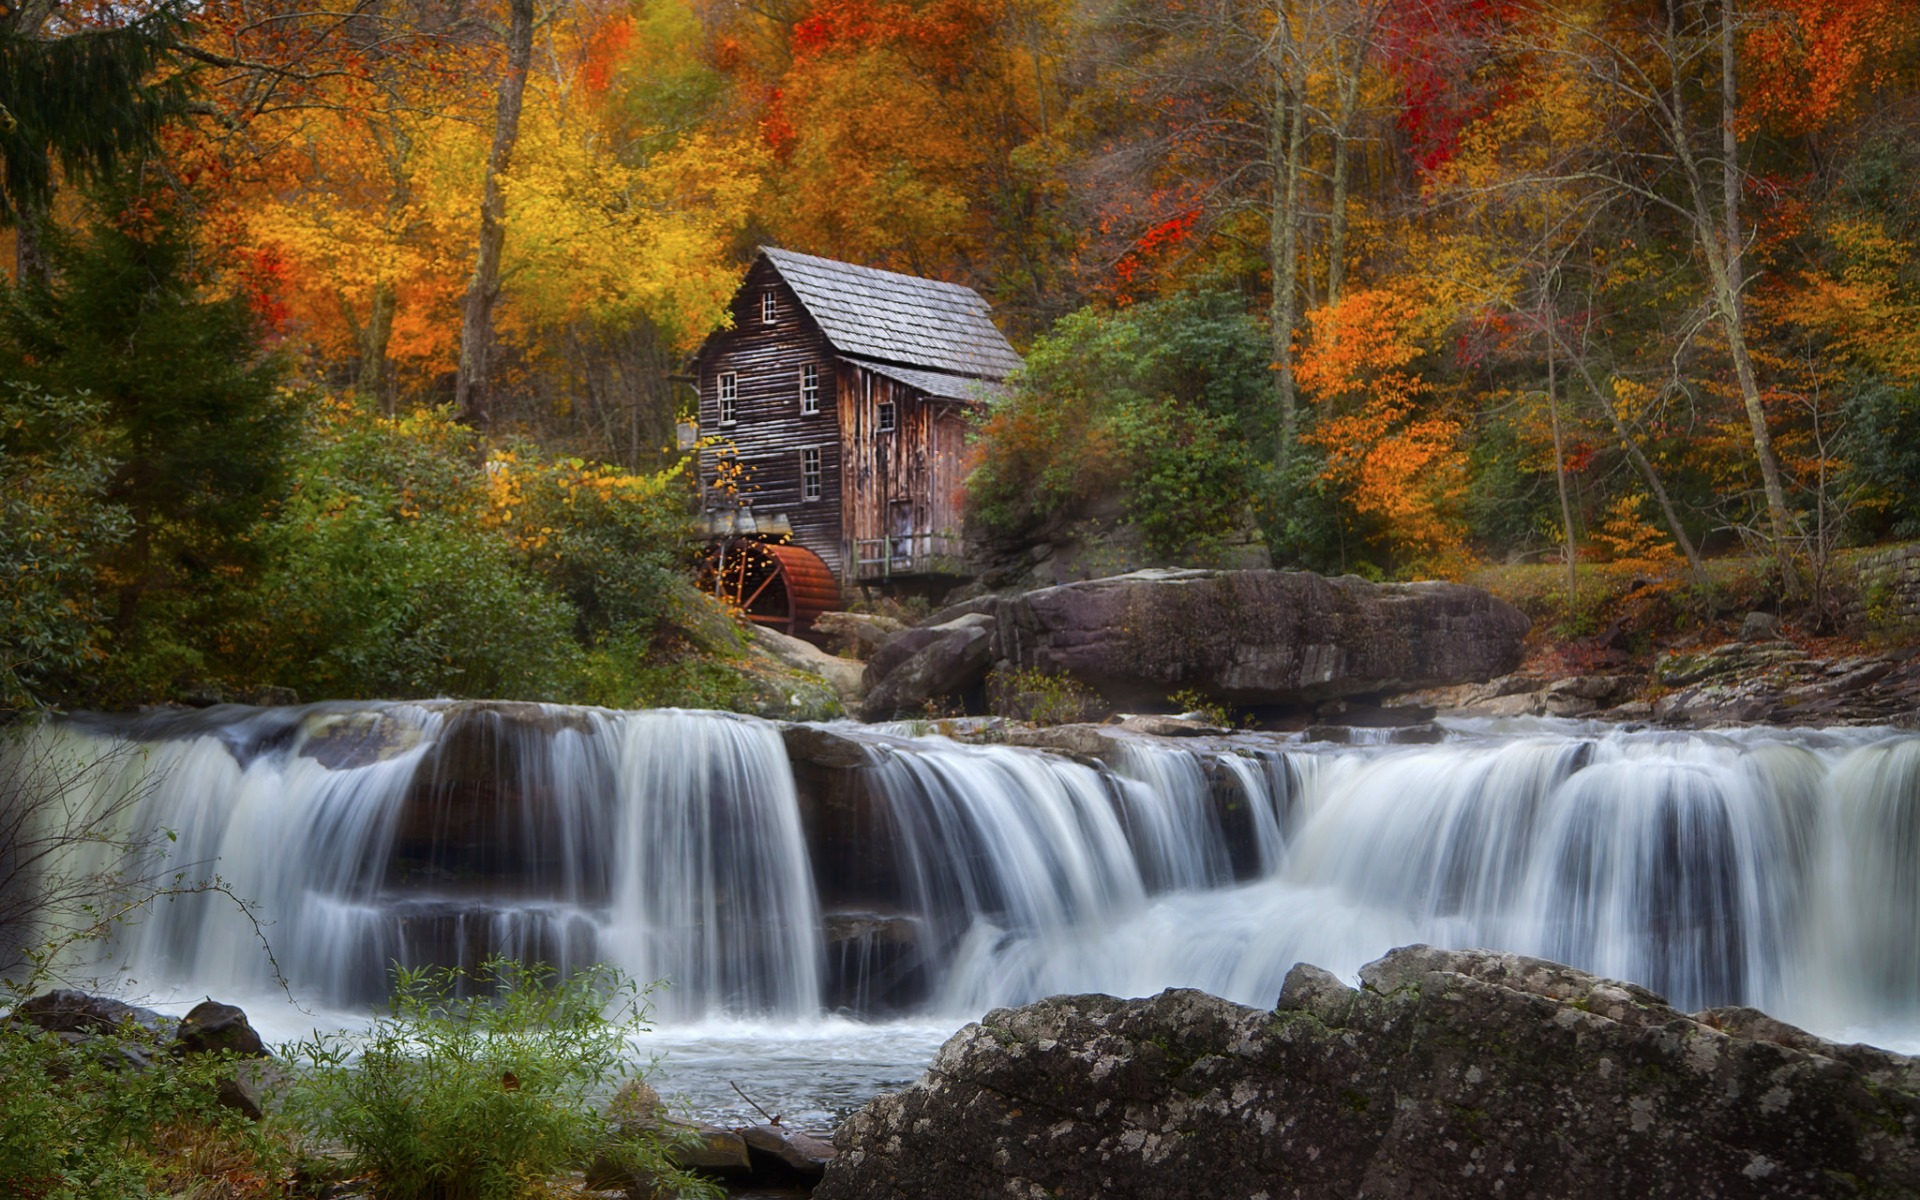 Fall Foliage Iphone Wallpaper Old Mill And Waterfall In Autumn Hd Wallpaper Background